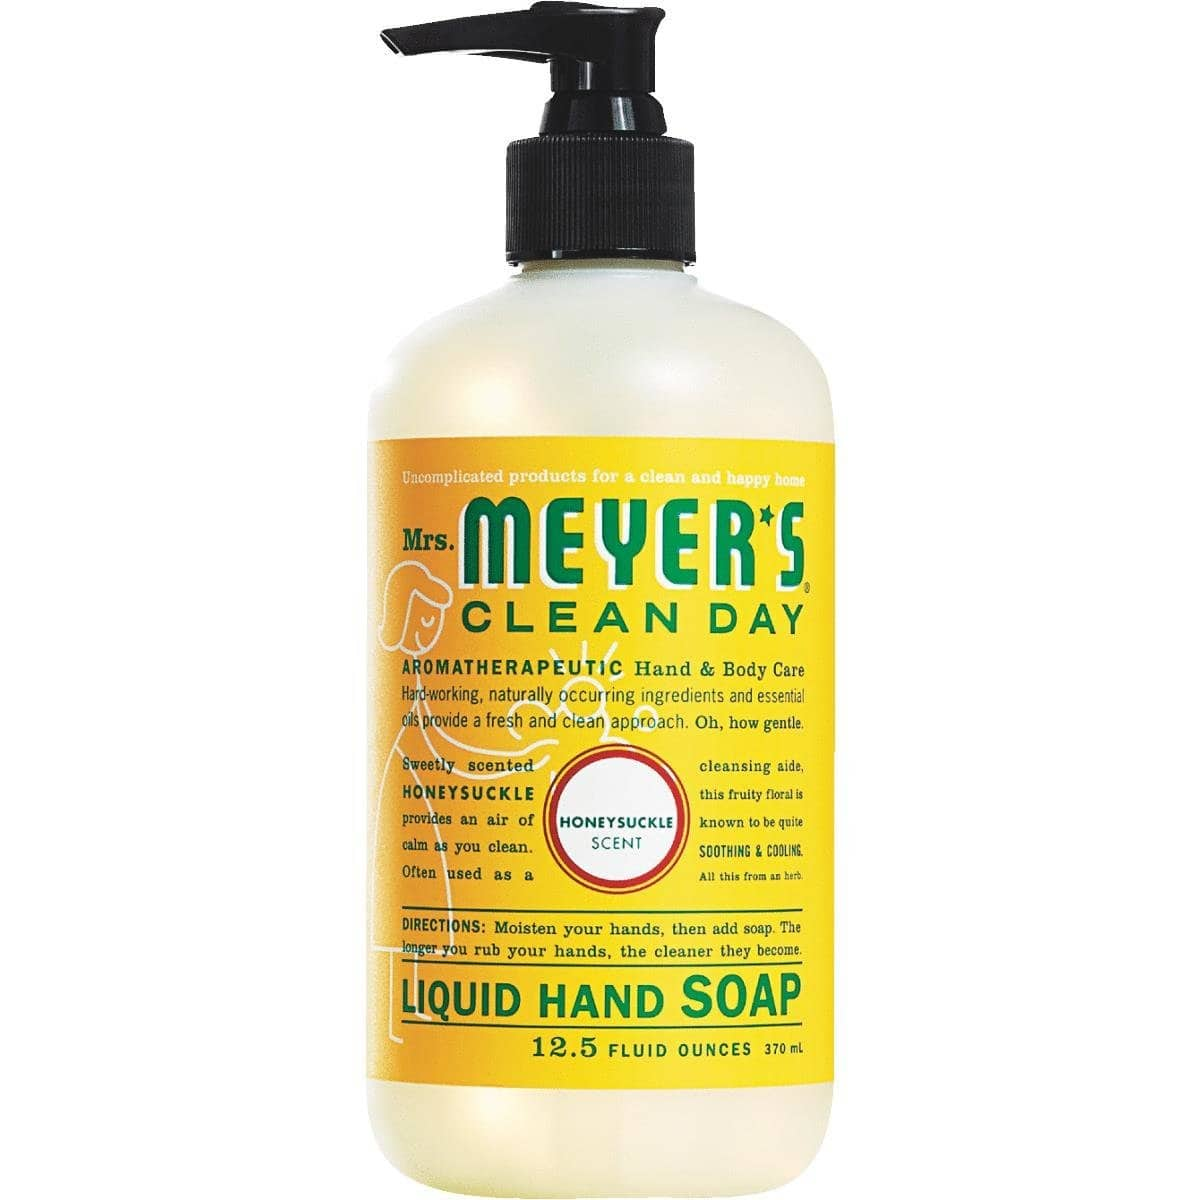 3 count Mrs. Meyer's Clean Day Liquid Hand Soap, Honeysuckle Scent, 12.5 fl oz: $7.95 or less w/S&S (cheaper than previous FP deal)